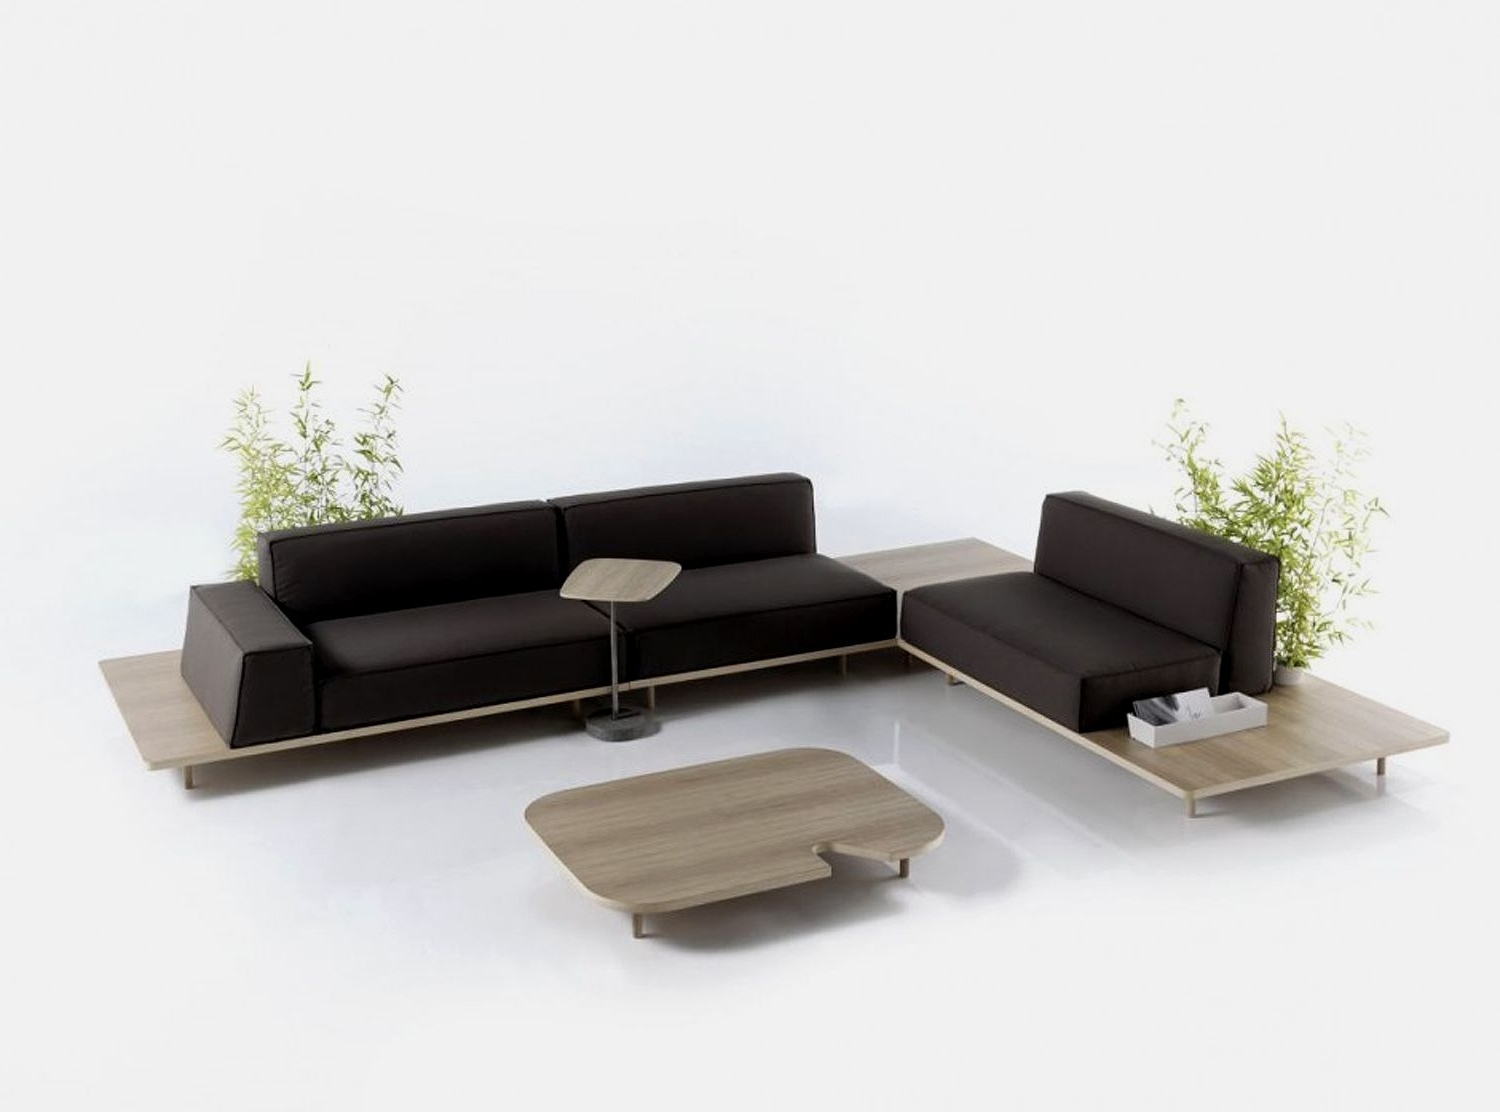 Sofa Furniture, Modern And (View 4 of 20)